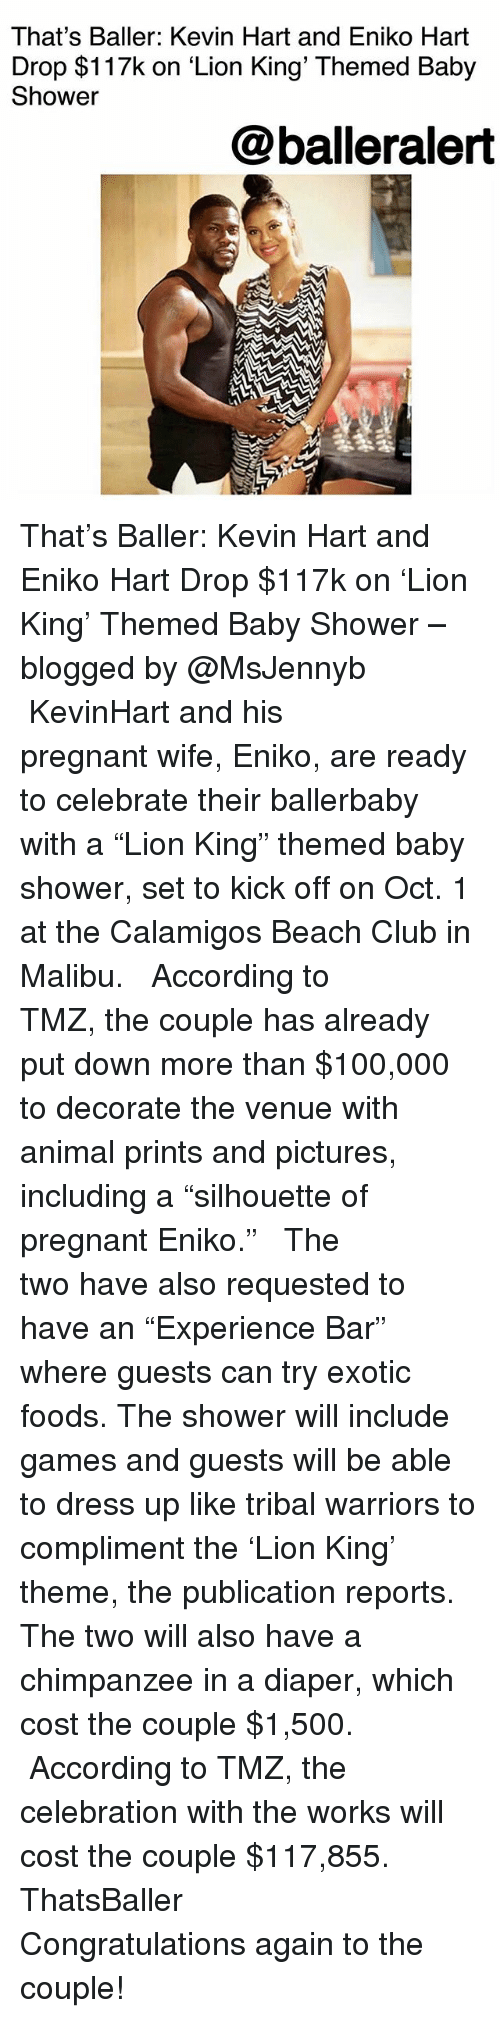 """malibu: That's Baller: Kevin Hart and Eniko Hart  Drop $117k on 'Lion King' Themed Baby  Shower  @balleralert That's Baller: Kevin Hart and Eniko Hart Drop $117k on 'Lion King' Themed Baby Shower – blogged by @MsJennyb ⠀⠀⠀⠀⠀⠀⠀ ⠀⠀⠀⠀⠀⠀⠀ KevinHart and his pregnant wife, Eniko, are ready to celebrate their ballerbaby with a """"Lion King"""" themed baby shower, set to kick off on Oct. 1 at the Calamigos Beach Club in Malibu. ⠀⠀⠀⠀⠀⠀⠀ ⠀⠀⠀⠀⠀⠀⠀ According to TMZ, the couple has already put down more than $100,000 to decorate the venue with animal prints and pictures, including a """"silhouette of pregnant Eniko."""" ⠀⠀⠀⠀⠀⠀⠀ ⠀⠀⠀⠀⠀⠀⠀ The two have also requested to have an """"Experience Bar"""" where guests can try exotic foods. The shower will include games and guests will be able to dress up like tribal warriors to compliment the 'Lion King' theme, the publication reports. The two will also have a chimpanzee in a diaper, which cost the couple $1,500. ⠀⠀⠀⠀⠀⠀⠀ ⠀⠀⠀⠀⠀⠀⠀ According to TMZ, the celebration with the works will cost the couple $117,855. ThatsBaller ⠀⠀⠀⠀⠀⠀⠀ ⠀⠀⠀⠀⠀⠀⠀ Congratulations again to the couple!"""